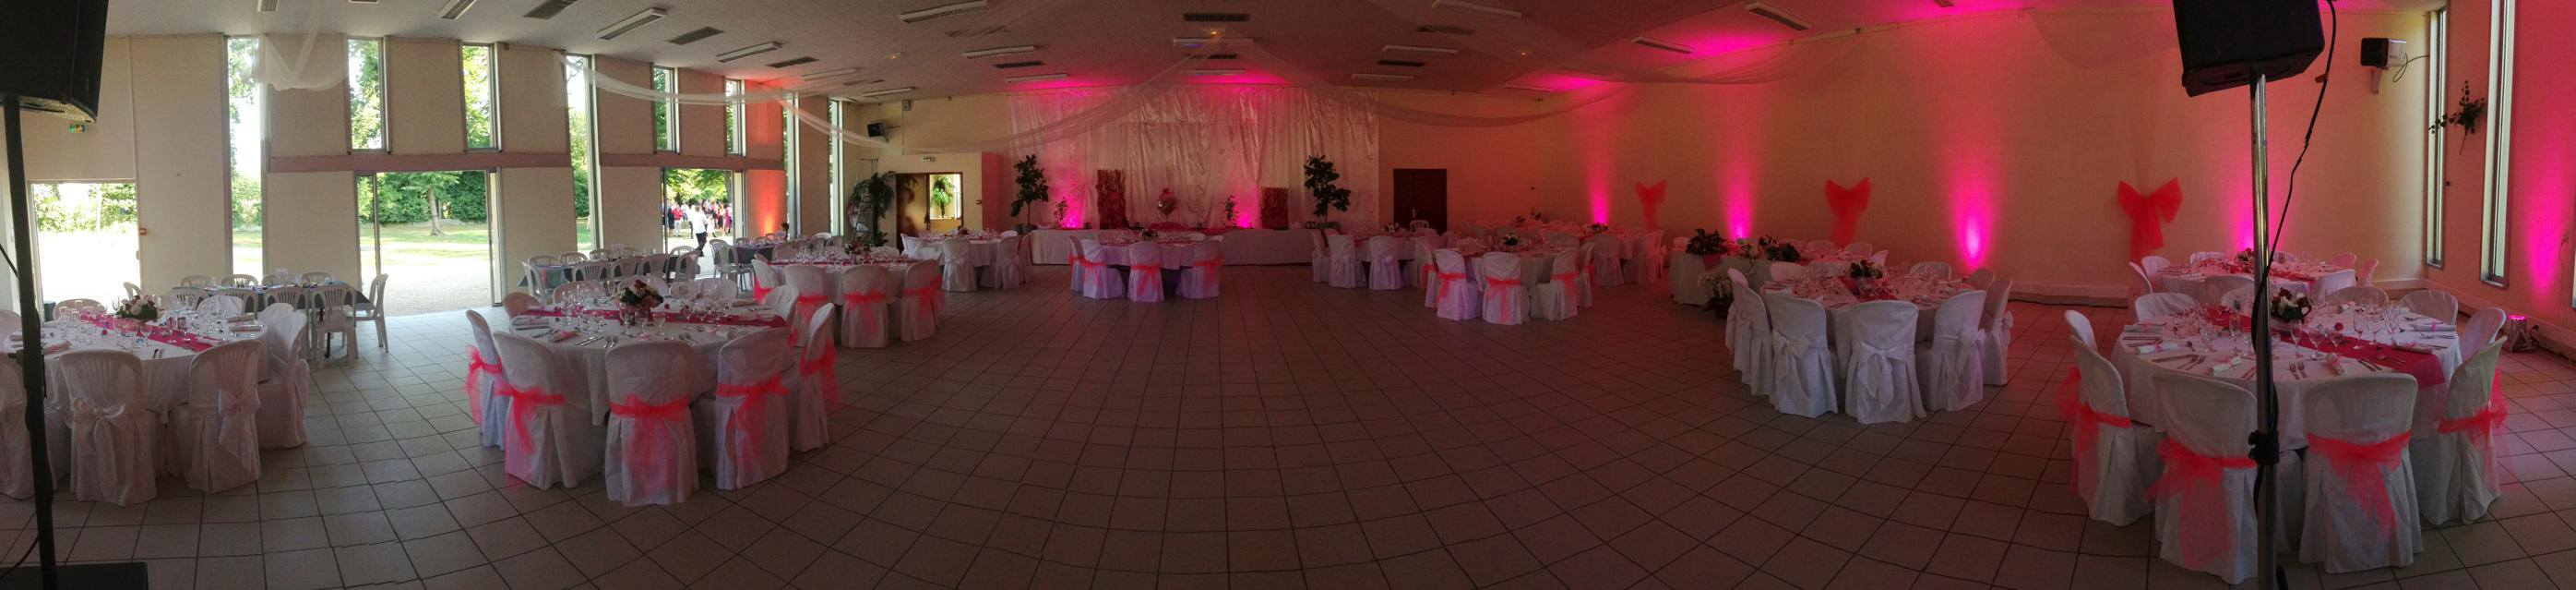 salle mariage verneuil